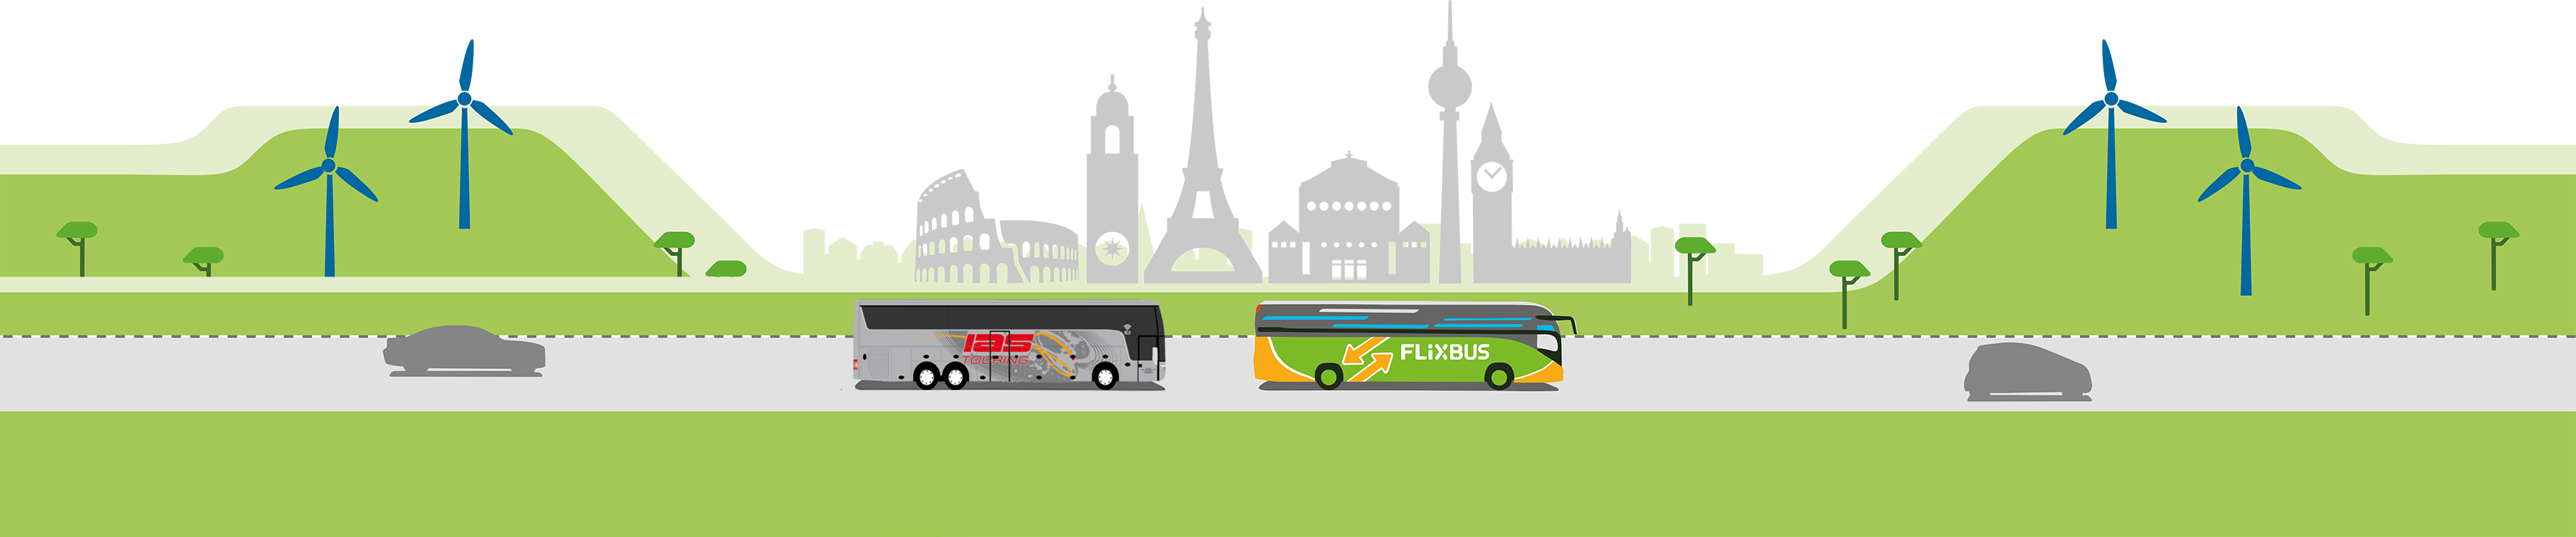 IAS collabora con Flixbus